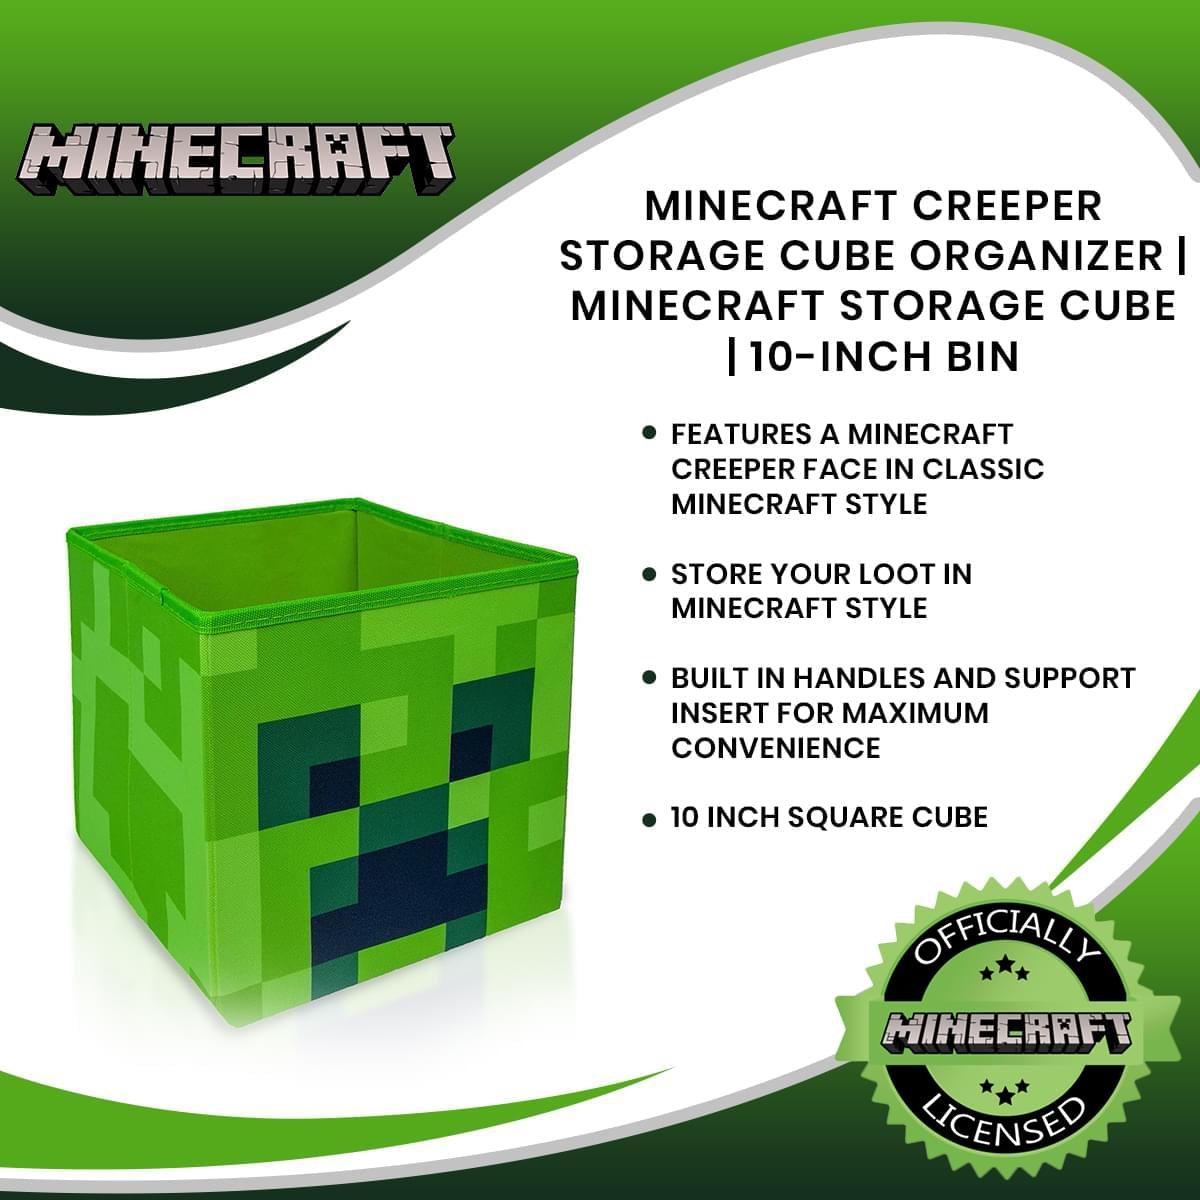 Minecraft Creeper Storage Cube Organizer | Minecraft Storage Cube | 10-Inch Bin